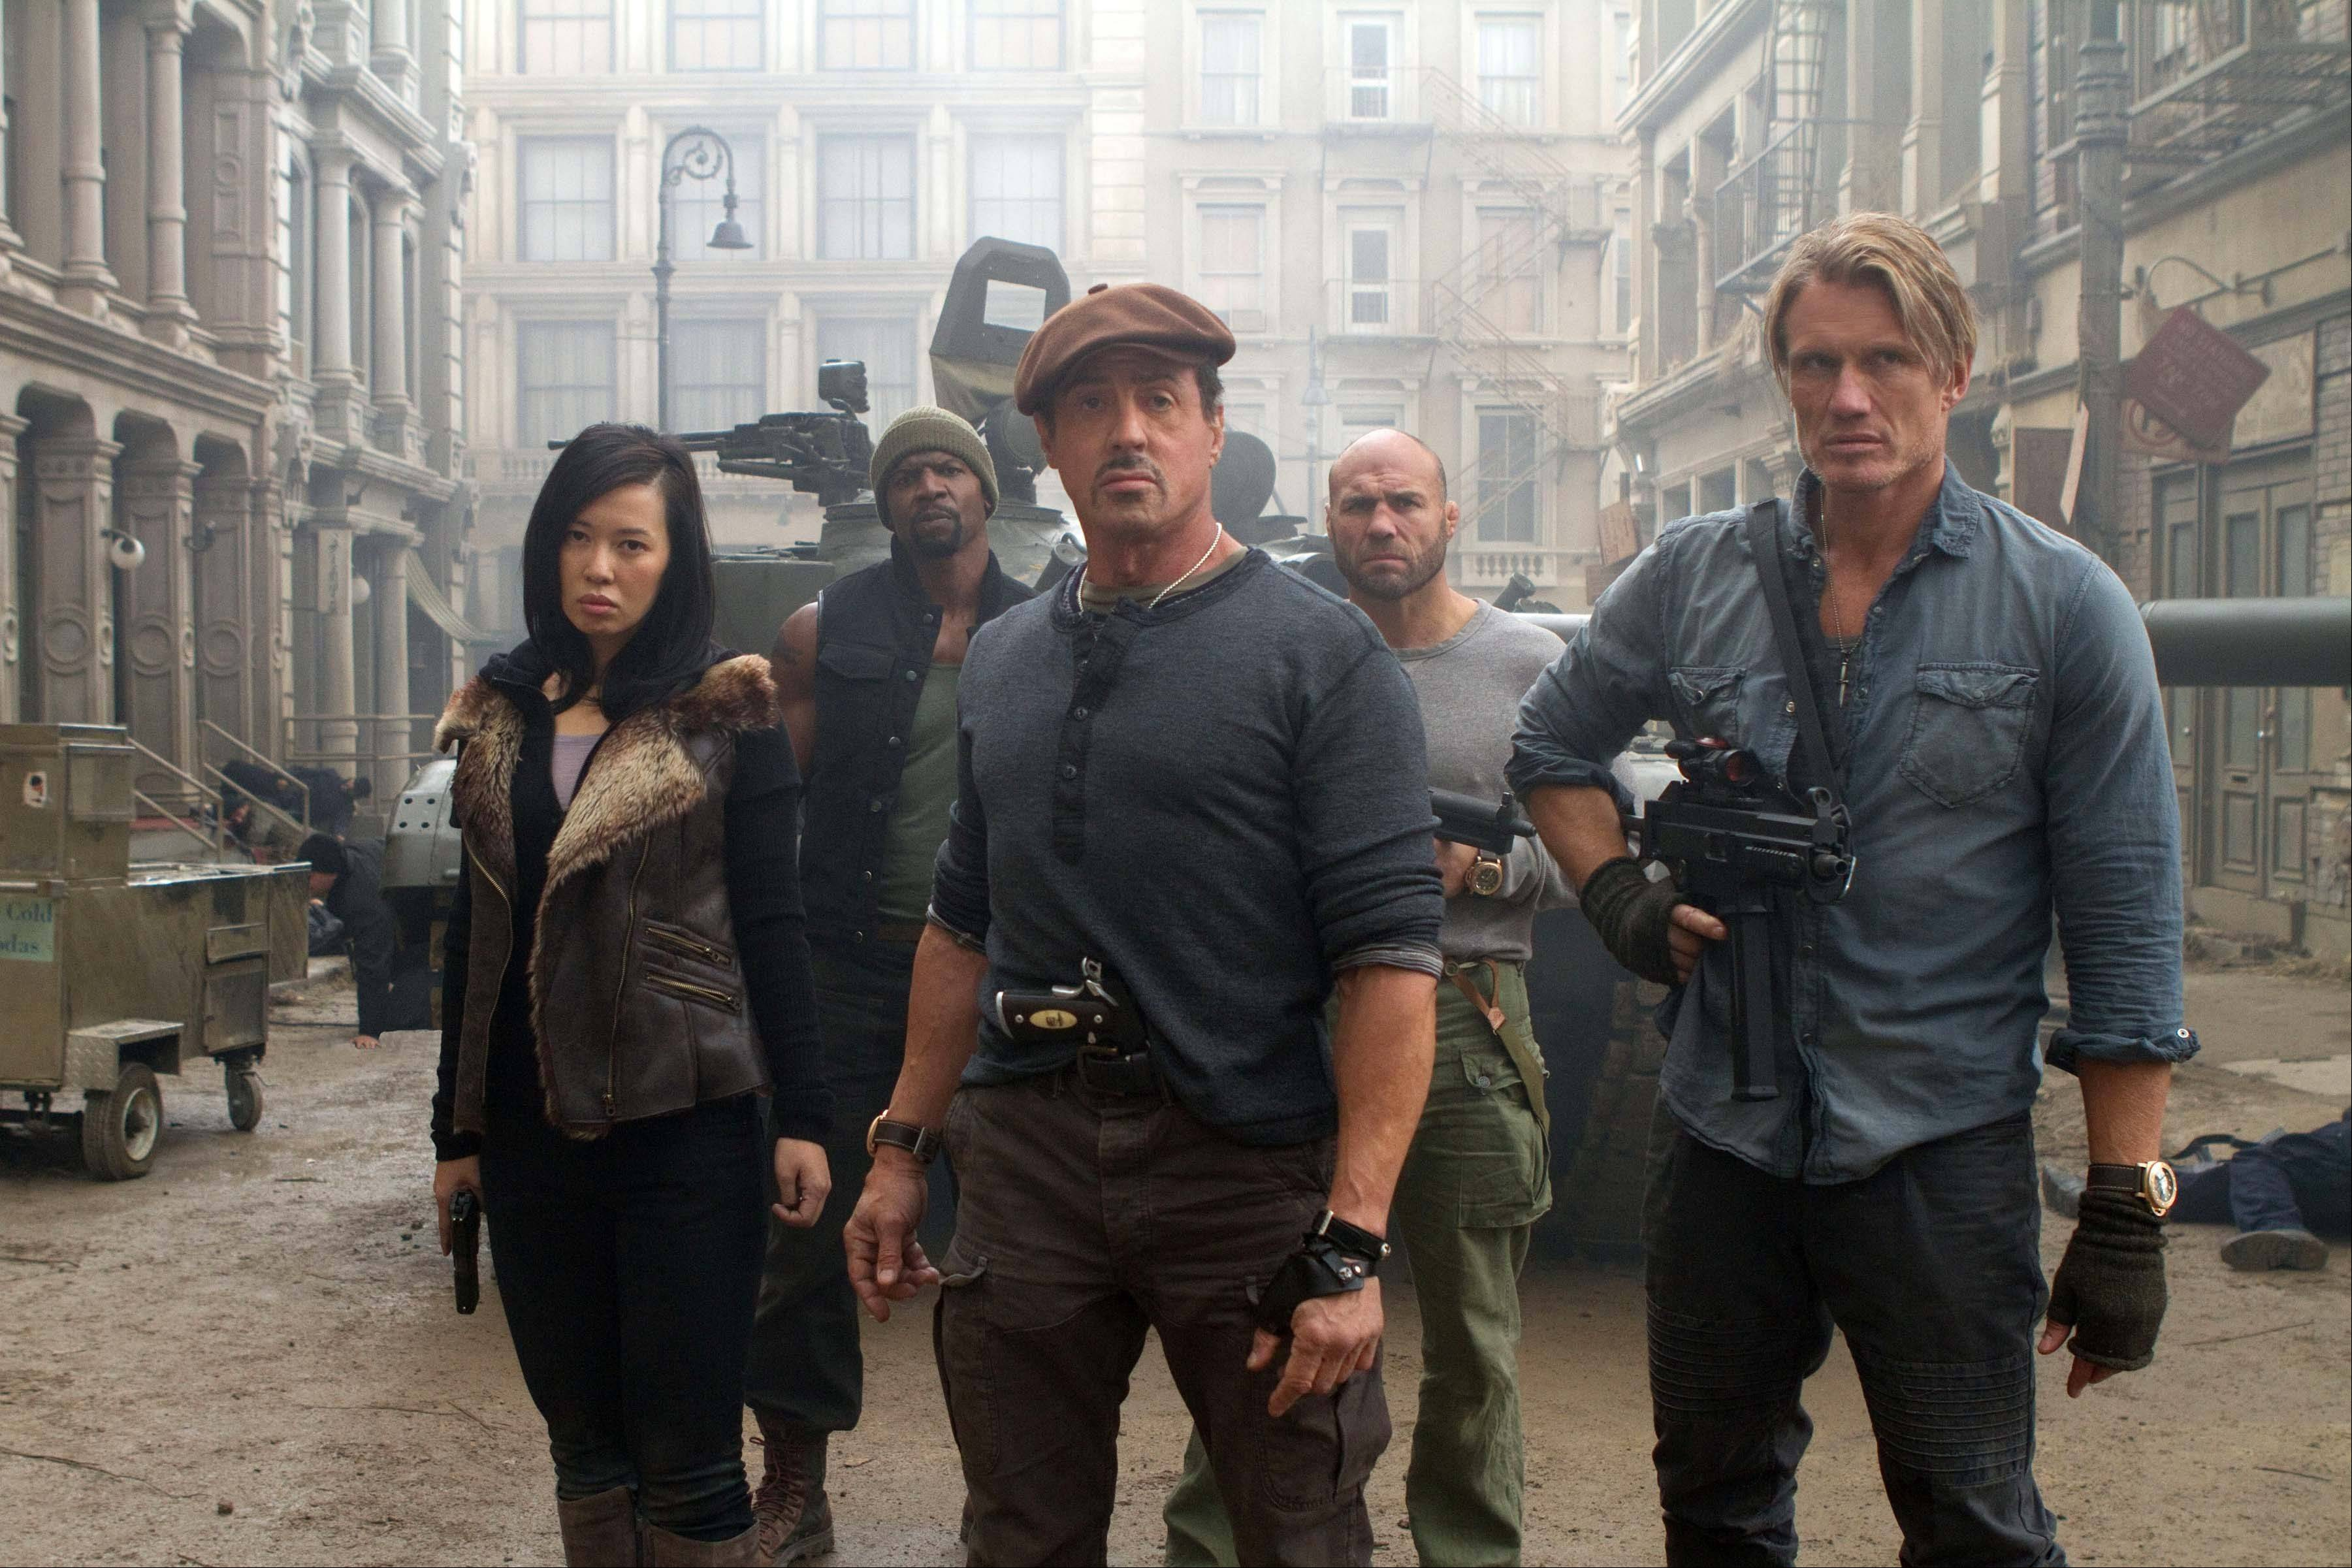 Ready for action are Yu Nan, left, Terry Crews, Sylvester Stallone, Randy Couture and Dolph Lundgren in The Expendables 2.""